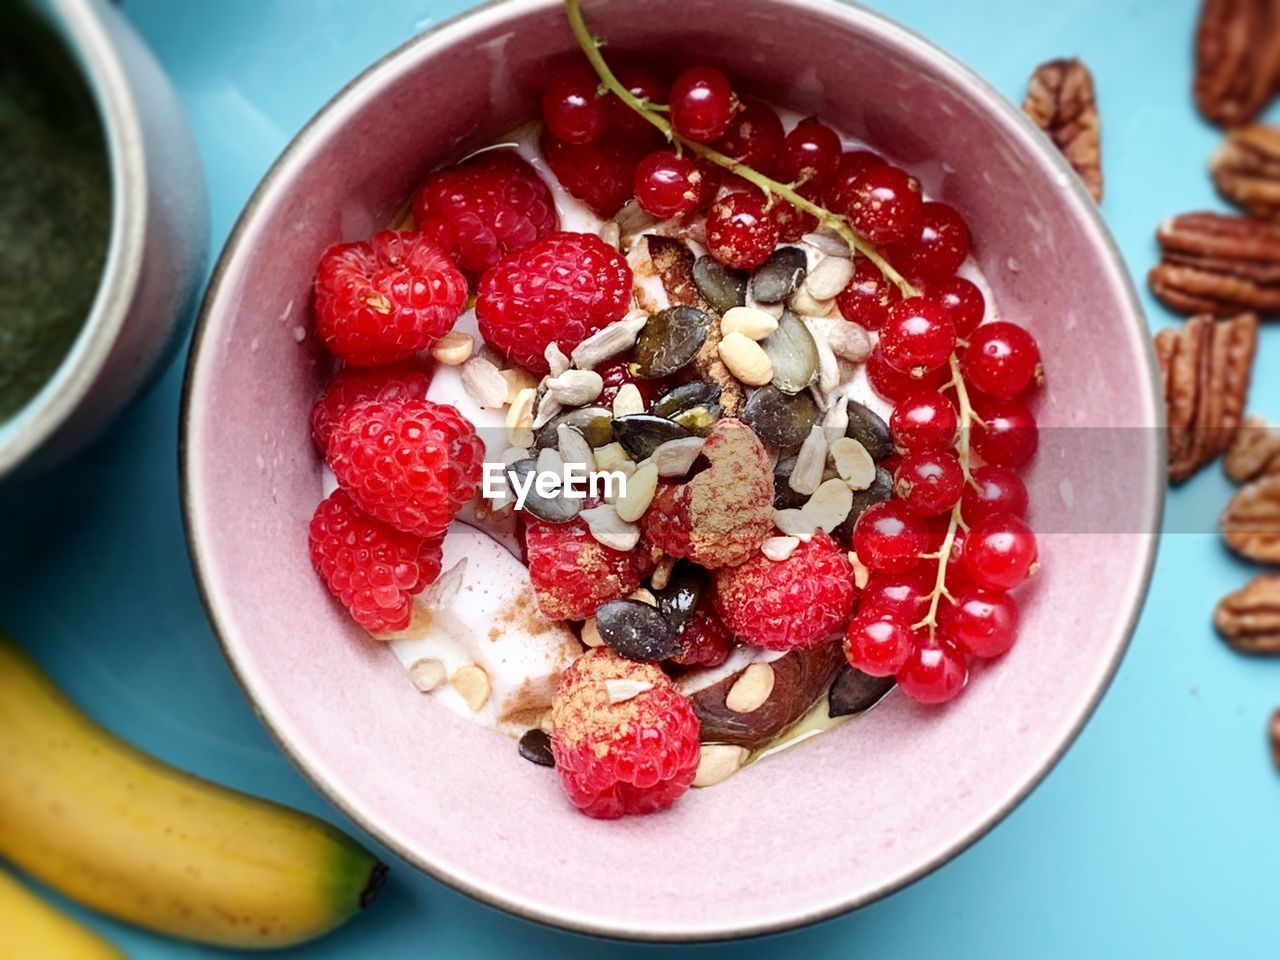 food and drink, food, healthy eating, fruit, wellbeing, freshness, bowl, berry fruit, table, breakfast, still life, meal, raspberry, breakfast cereal, directly above, close-up, indoors, ready-to-eat, high angle view, seed, no people, temptation